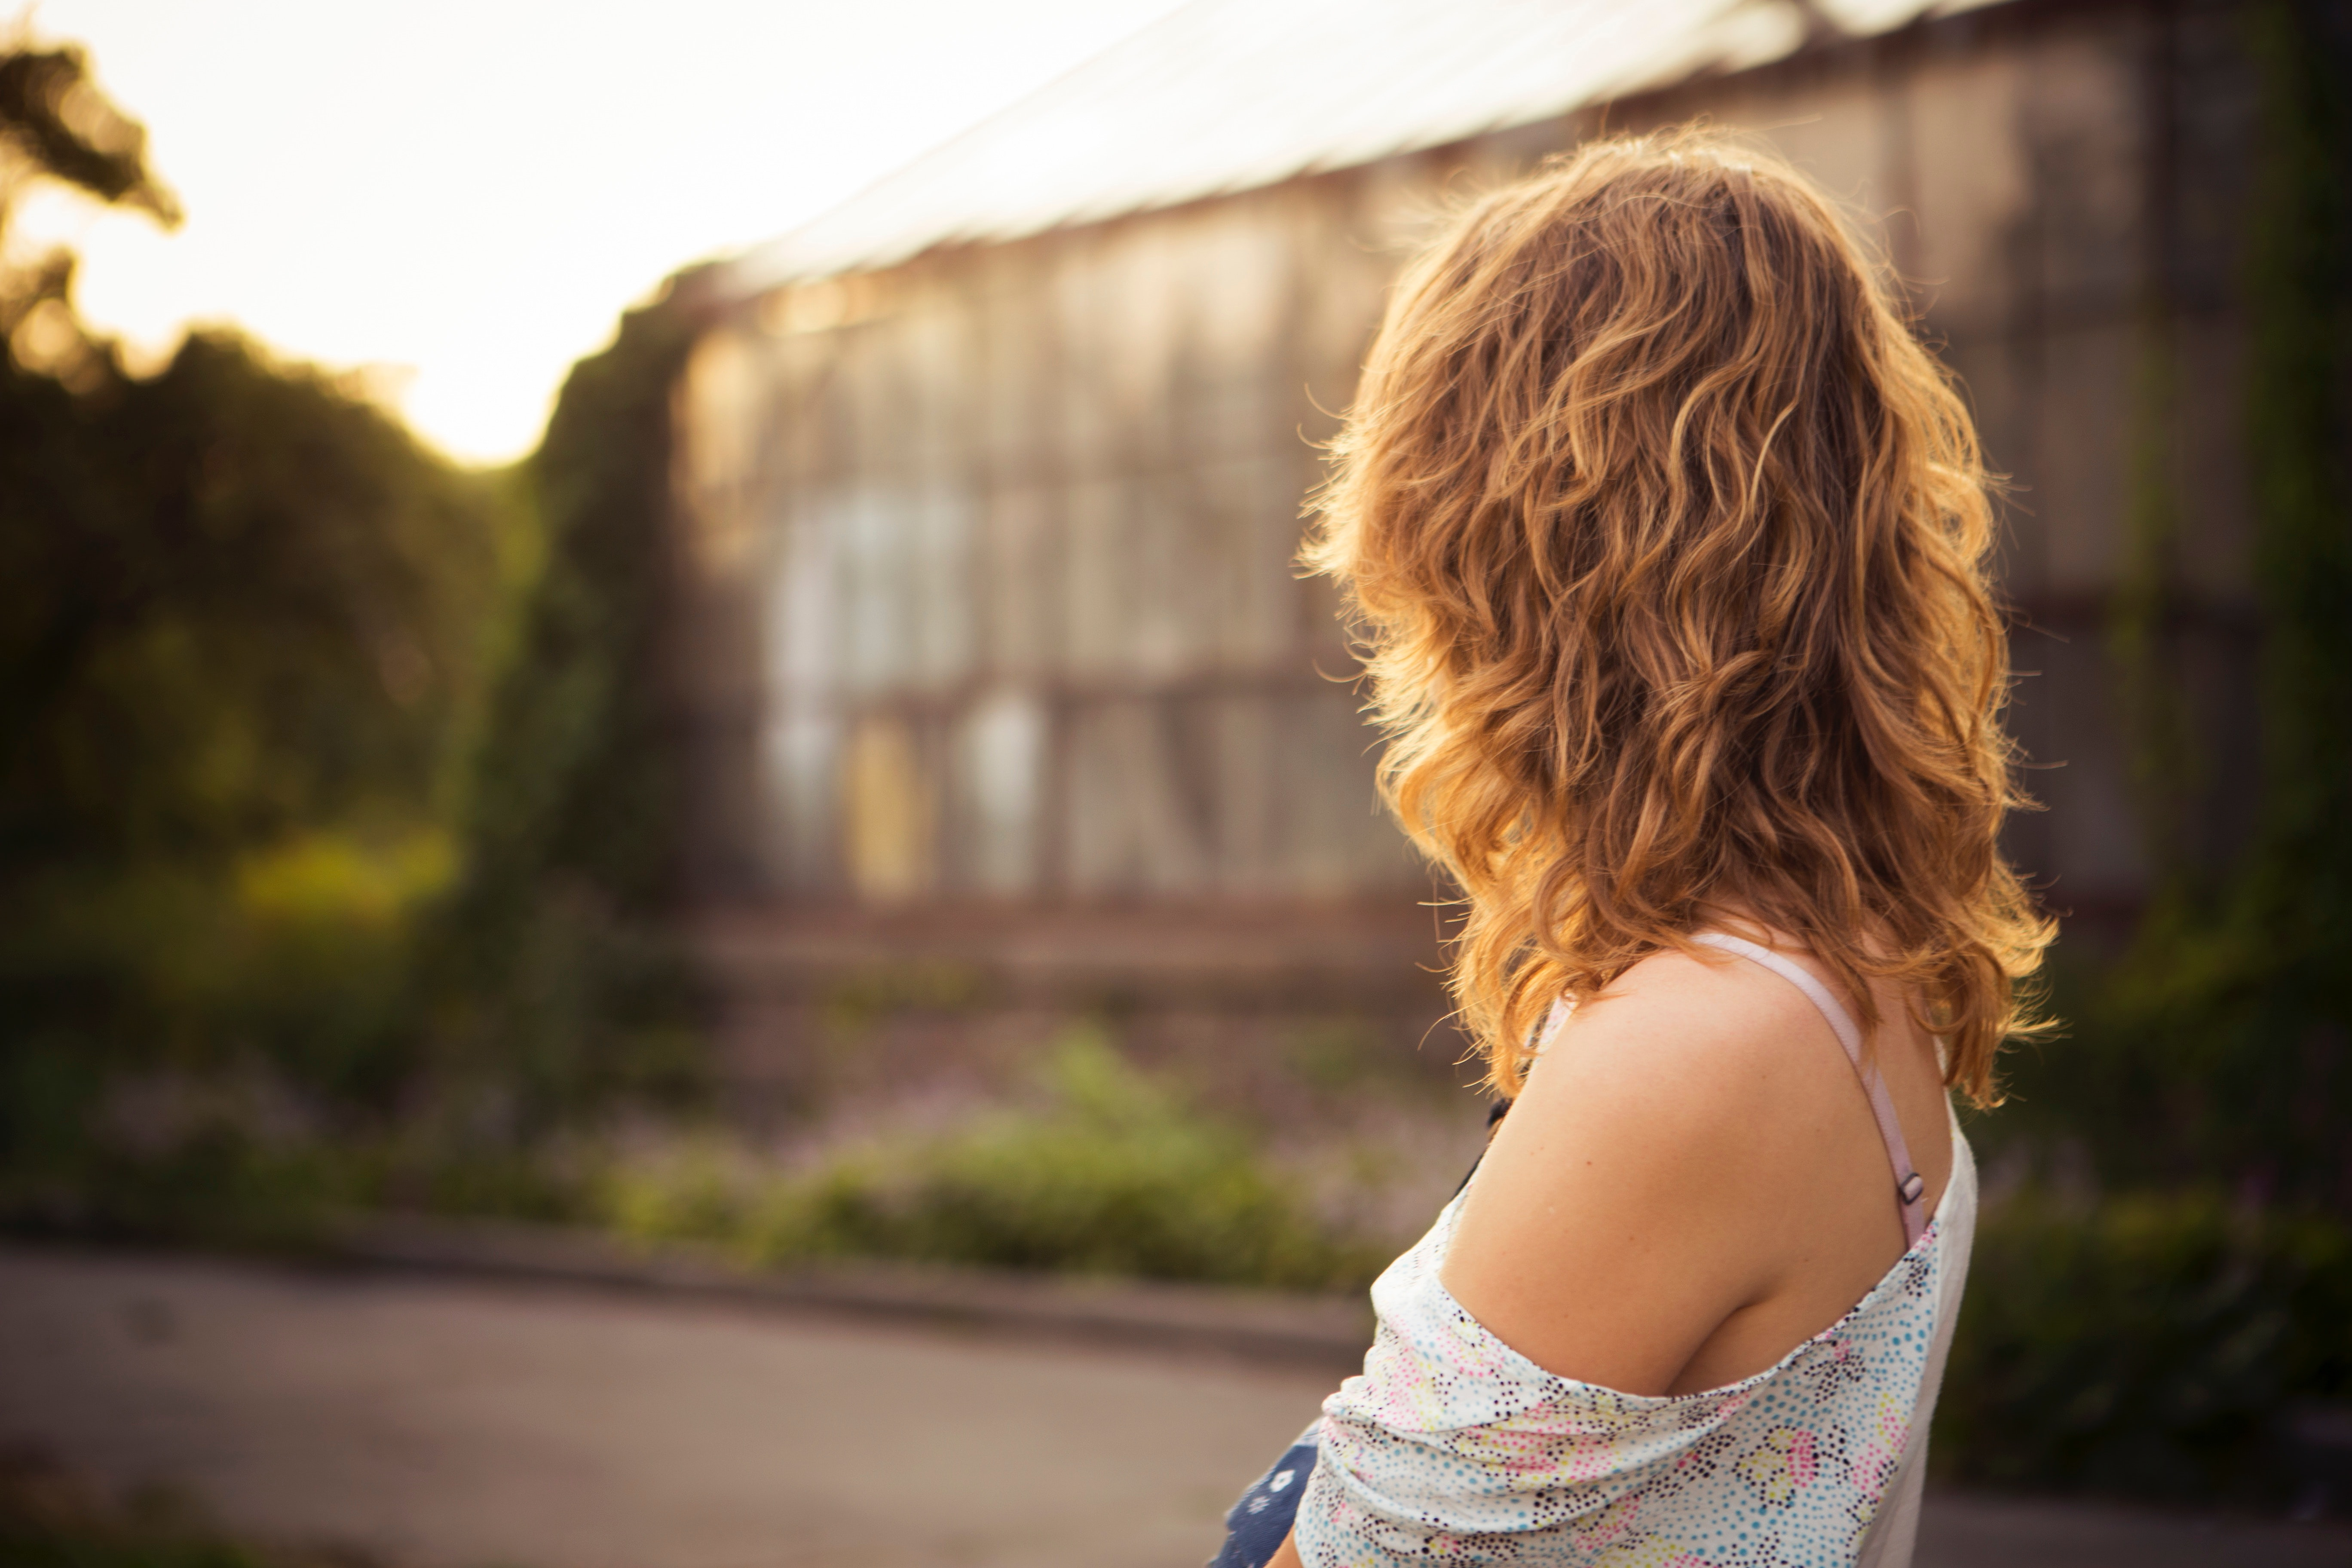 6 Signs You May Be Emotionally Unavailable